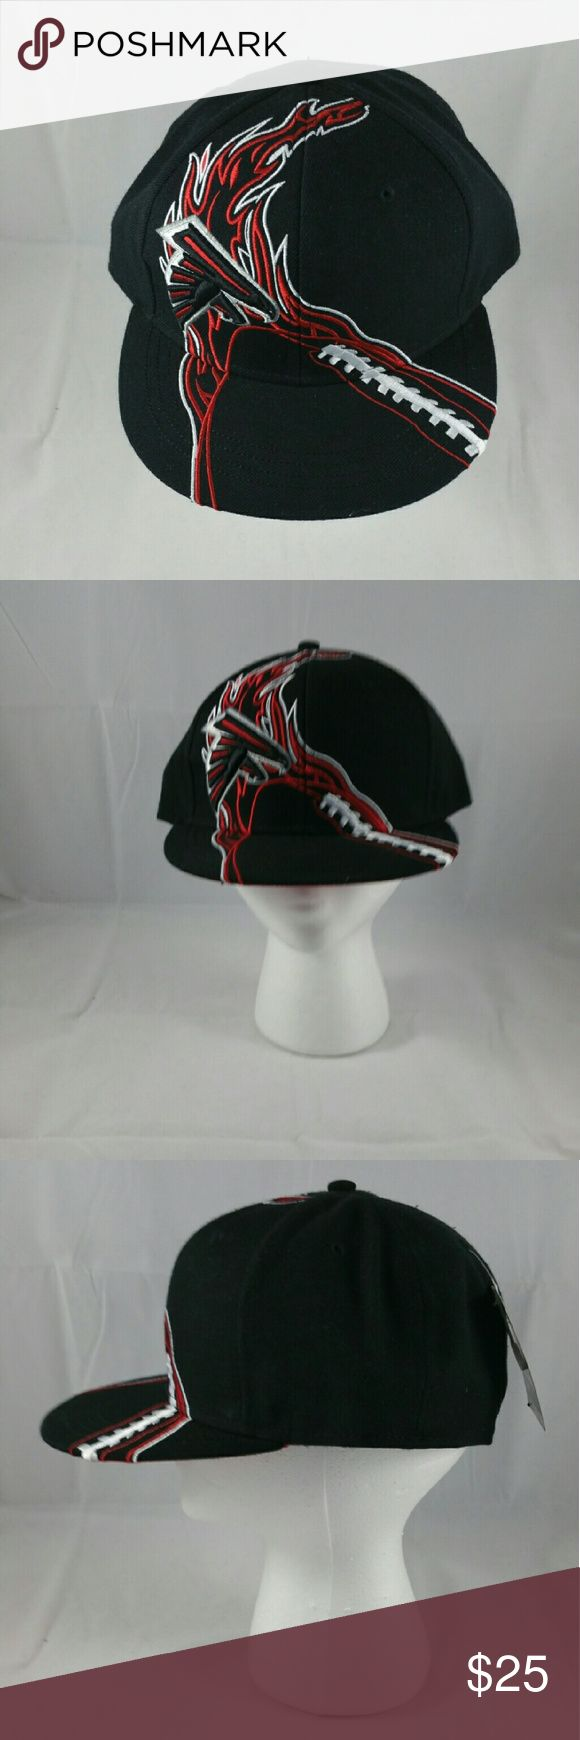 Atlanta Falcons Fitted Cap NWT Redzone Poly Flatbill Fitted Cap  Brand - NFL Team Apparel Size - 7 3/8 Stylish & durable, 100% polyester High quality appliqu? and embroidery designs High-quality 3-D front embroidered logo Custom NFL? printed inner tape. Decorated in the team colors Fitted to size Officially licensed facebook.com/CombsConnection/shop Accessories Hats